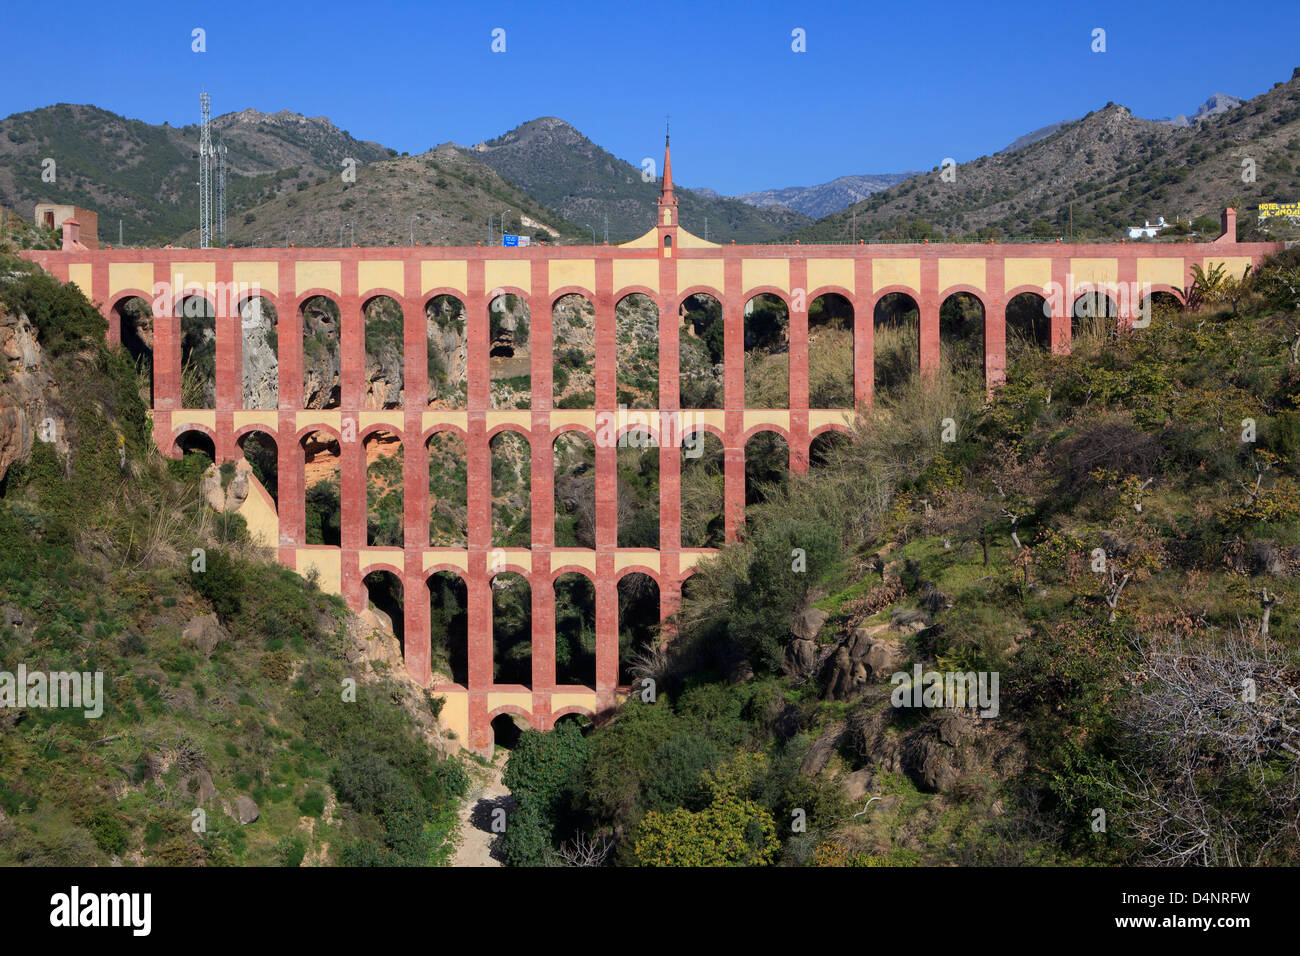 The 19th century Eagle Aqueduct (Acueducto del Aguila) between Nerja and Maro on the Costa del Sol in Spain - Stock Image